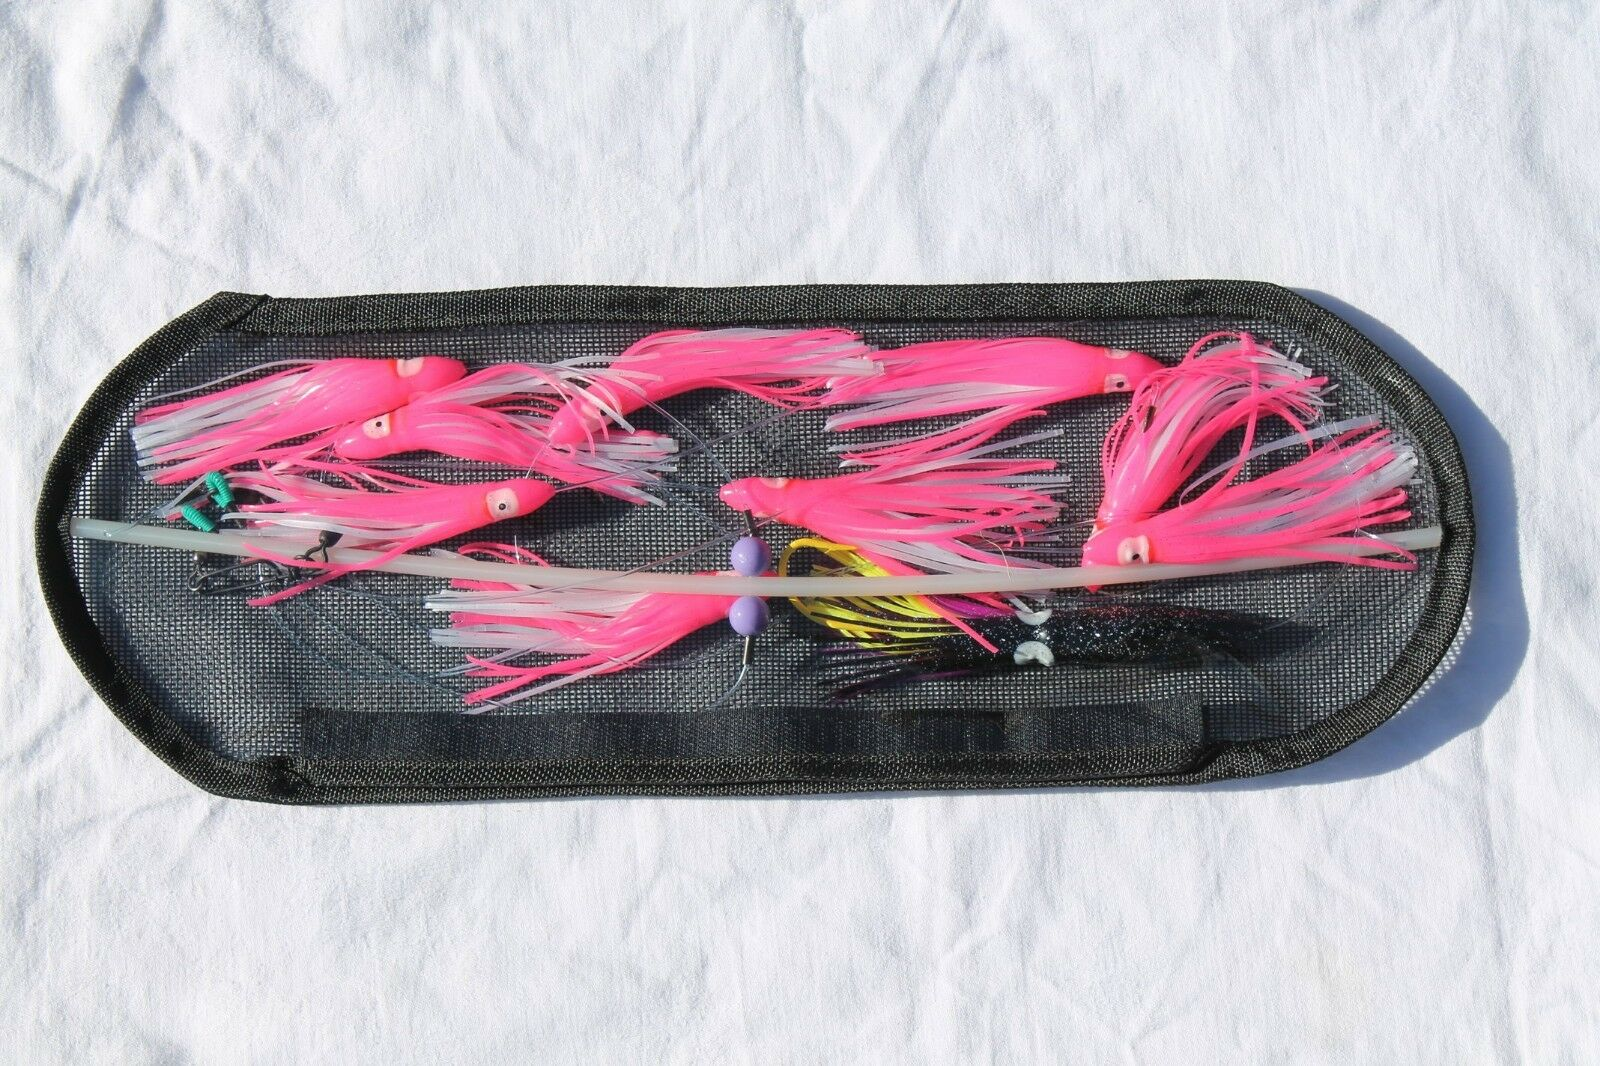 18-inch Flexible Spreader Bar w   PINK AND WHITE Squids, Hook Lure, Storage Bag  be in great demand